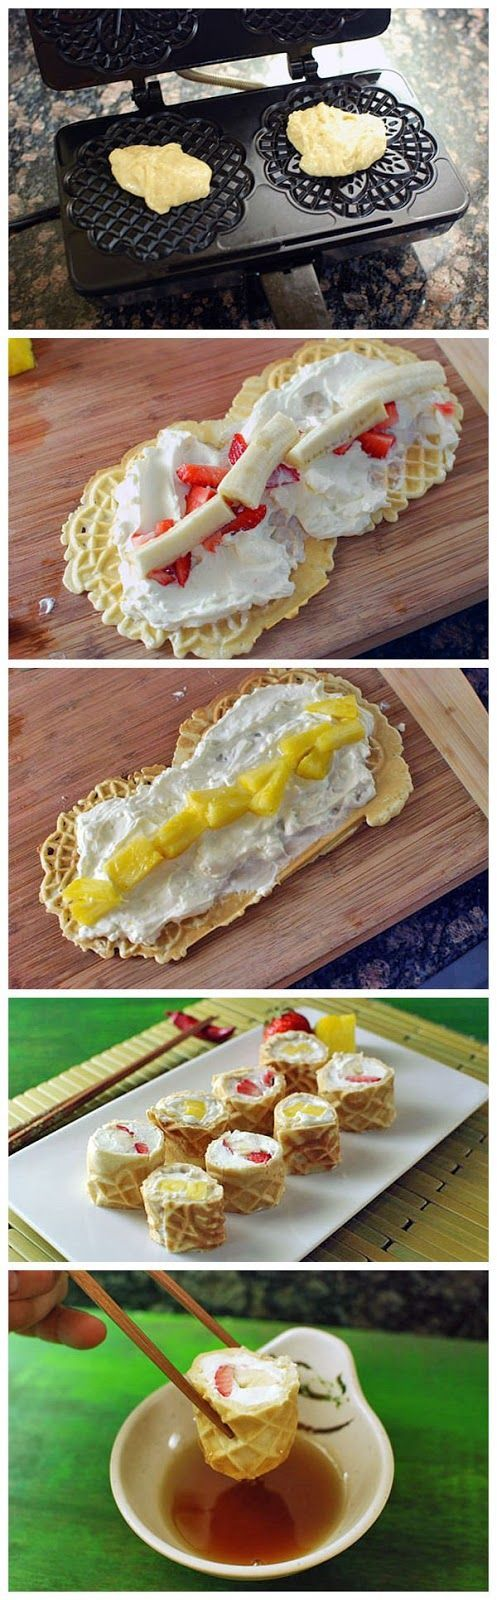 Waffle Breakfast Sushi stuffed with fruit and a cream cheese | http://health-breakfast.blogspot.com